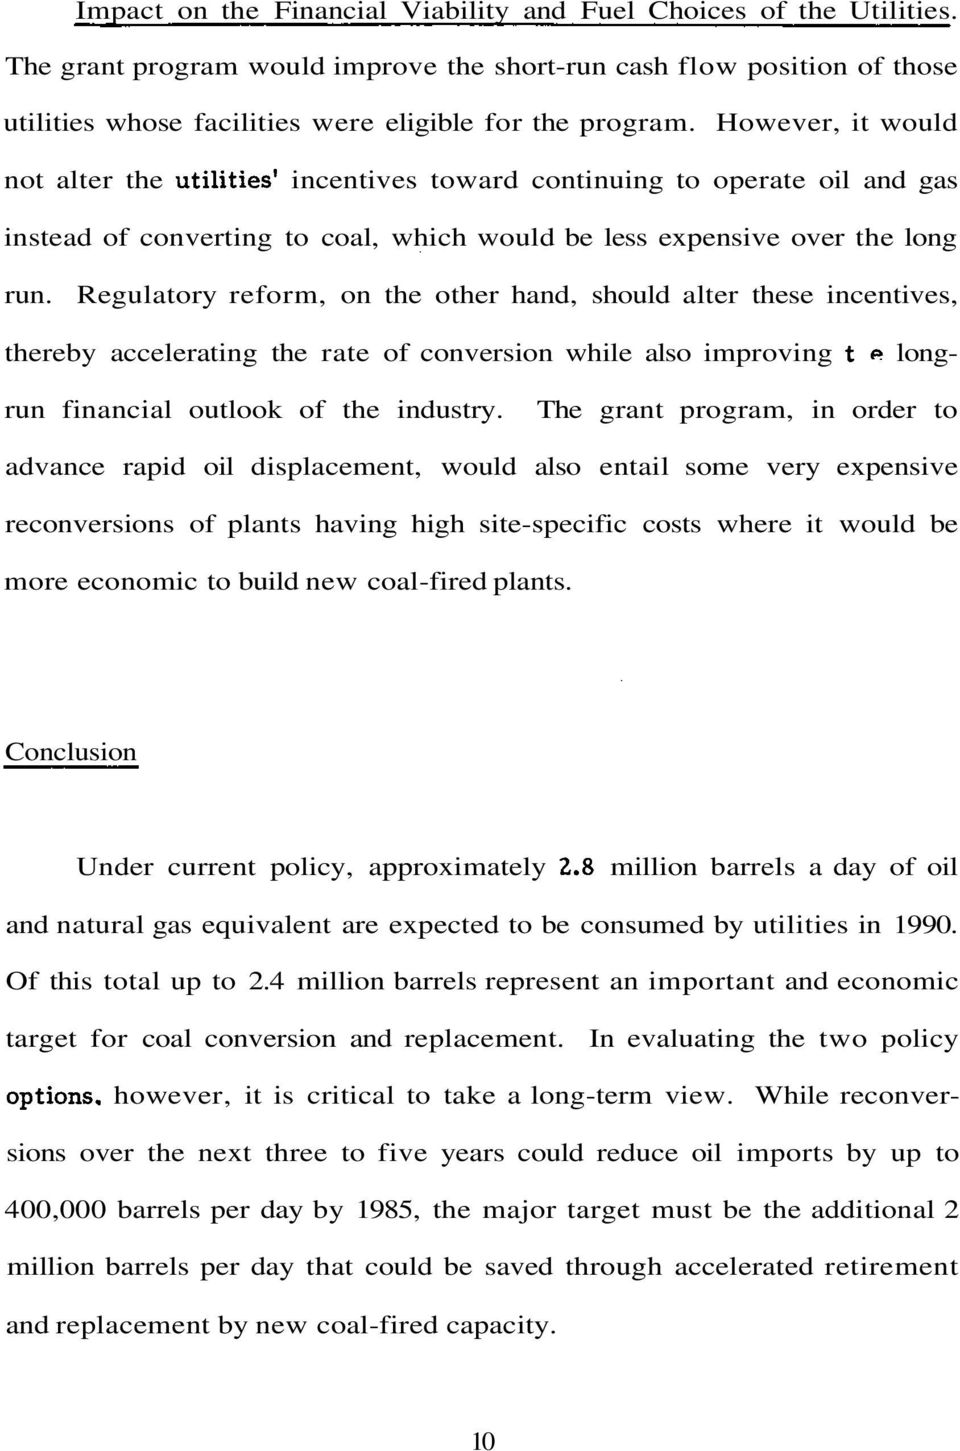 Regulatory reform, on the other hand, should alter these incentives, thereby accelerating the rate of conversion while also improving t «longrun financial outlook of the industry.